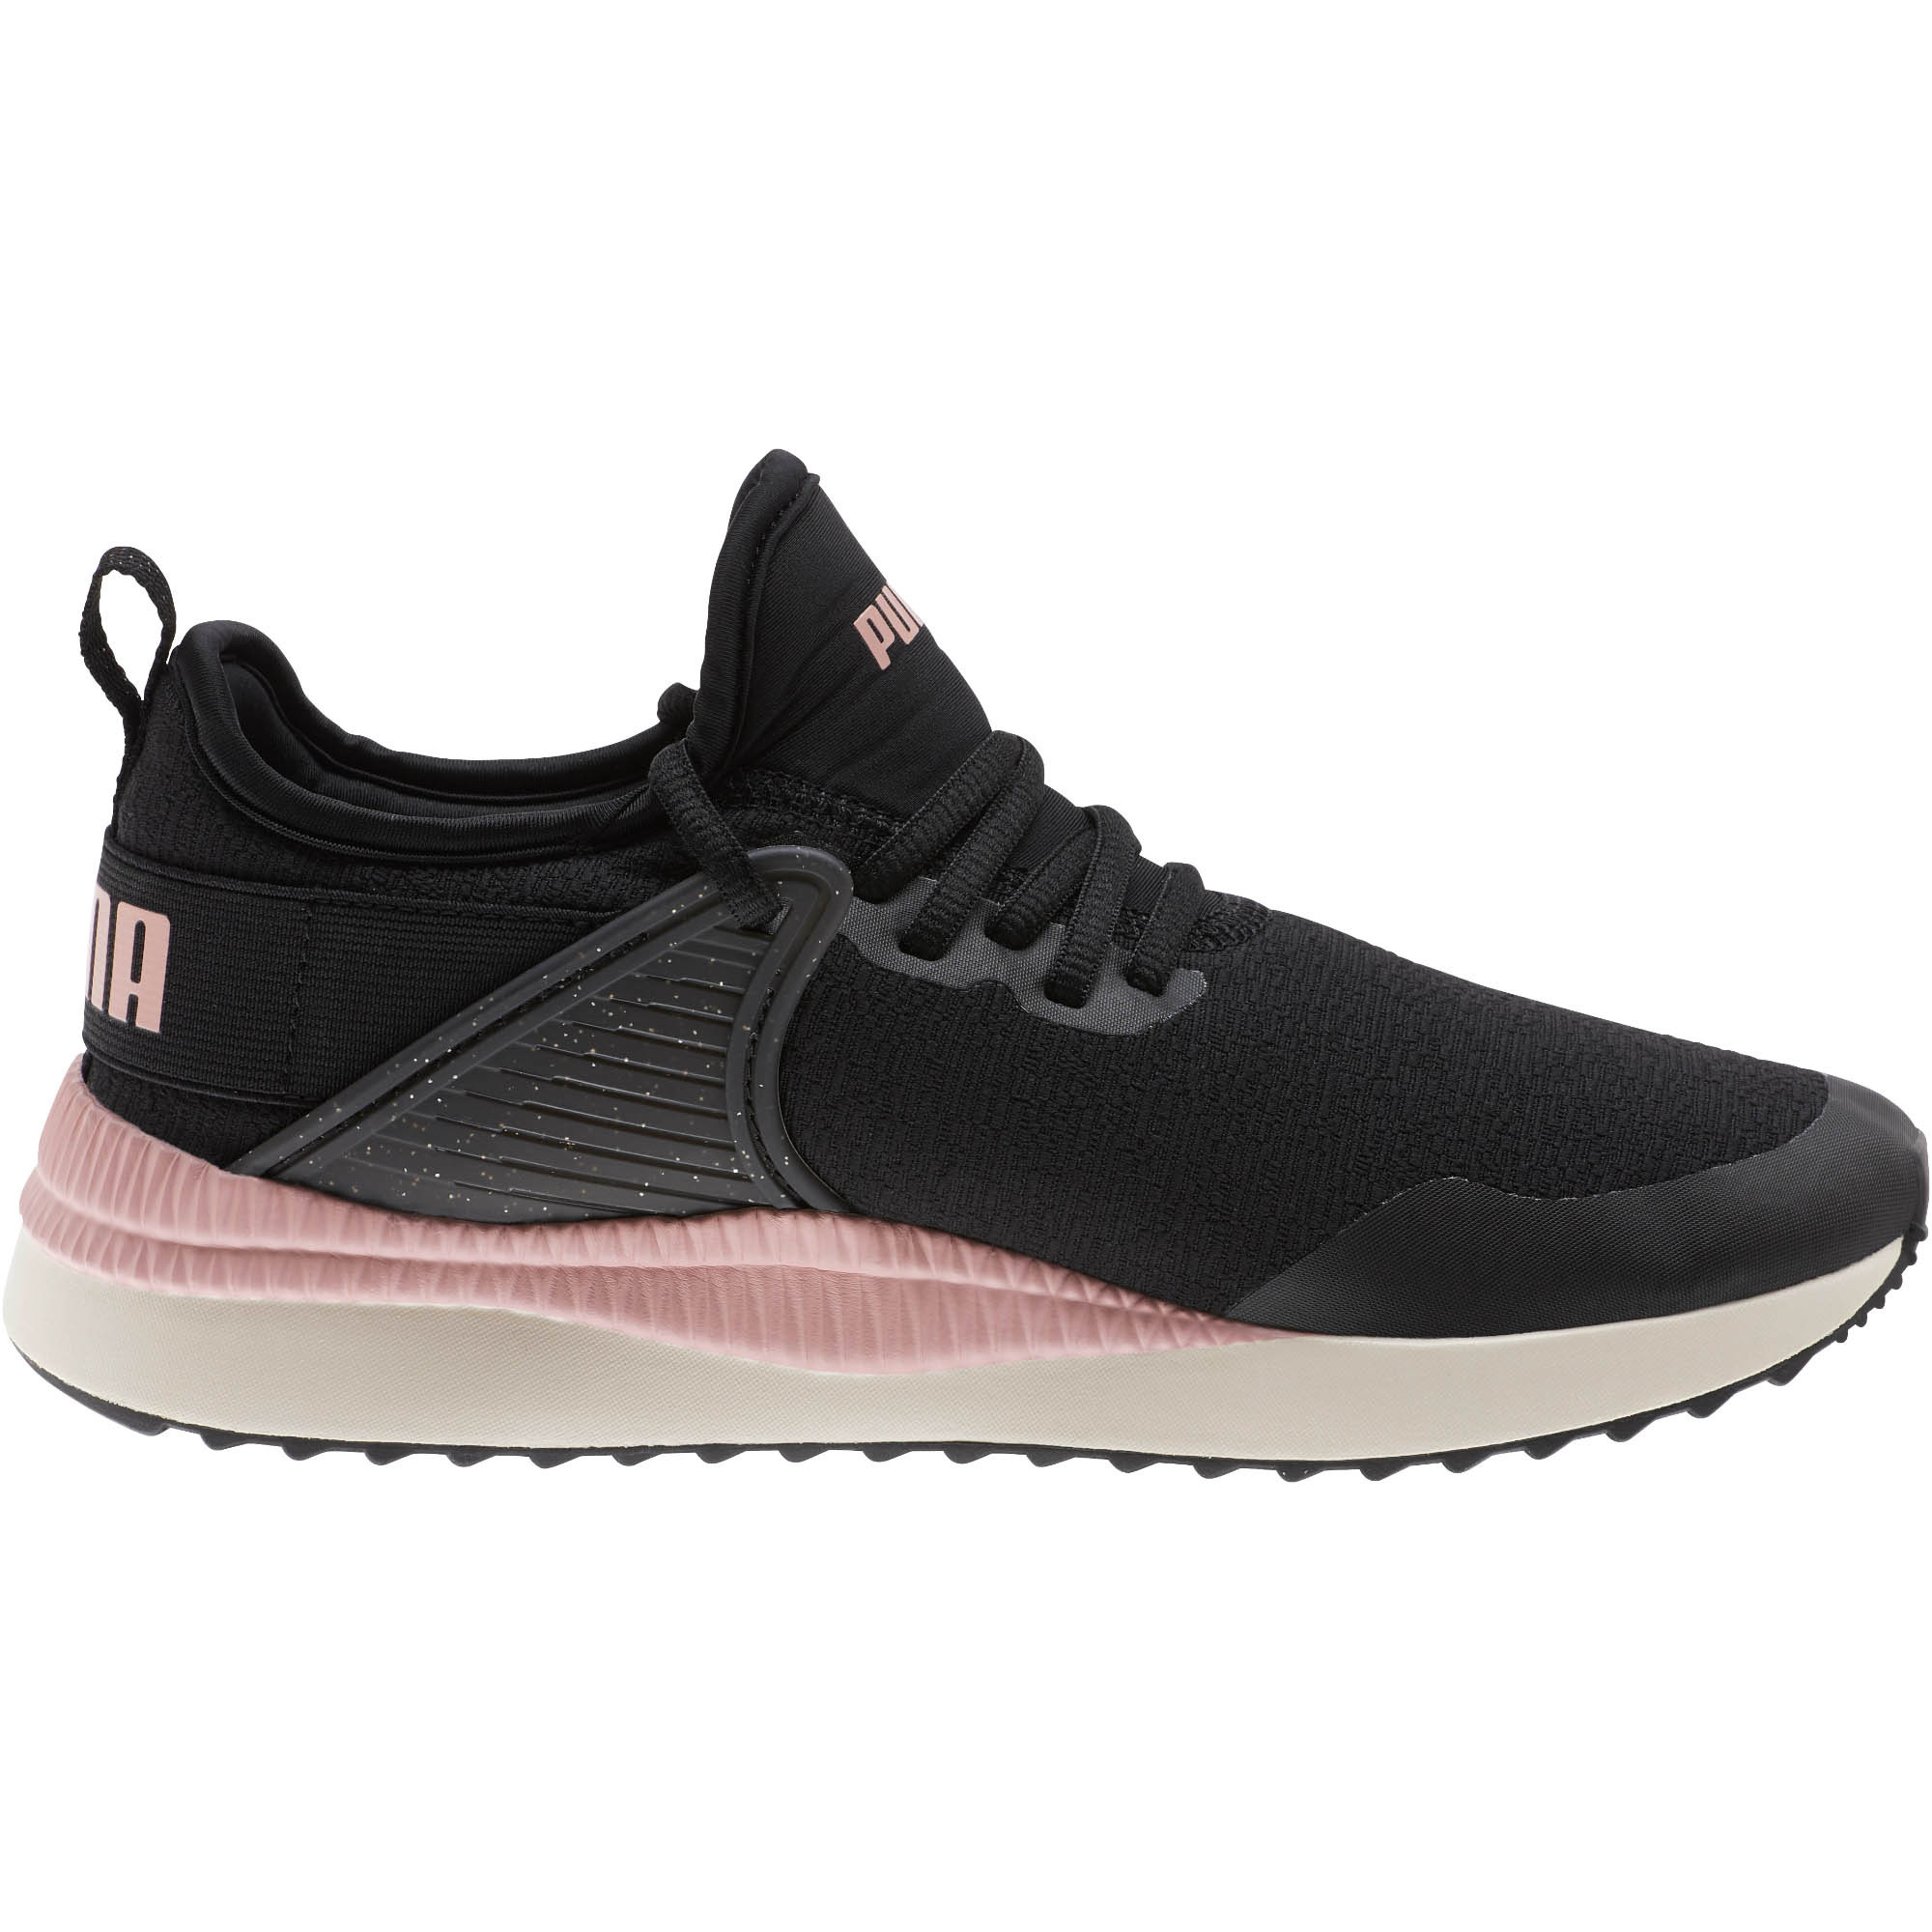 PUMA-Pacer-Next-Cage-Glitter-Women-039-s-Sneakers-Women-Shoe-Basics thumbnail 10